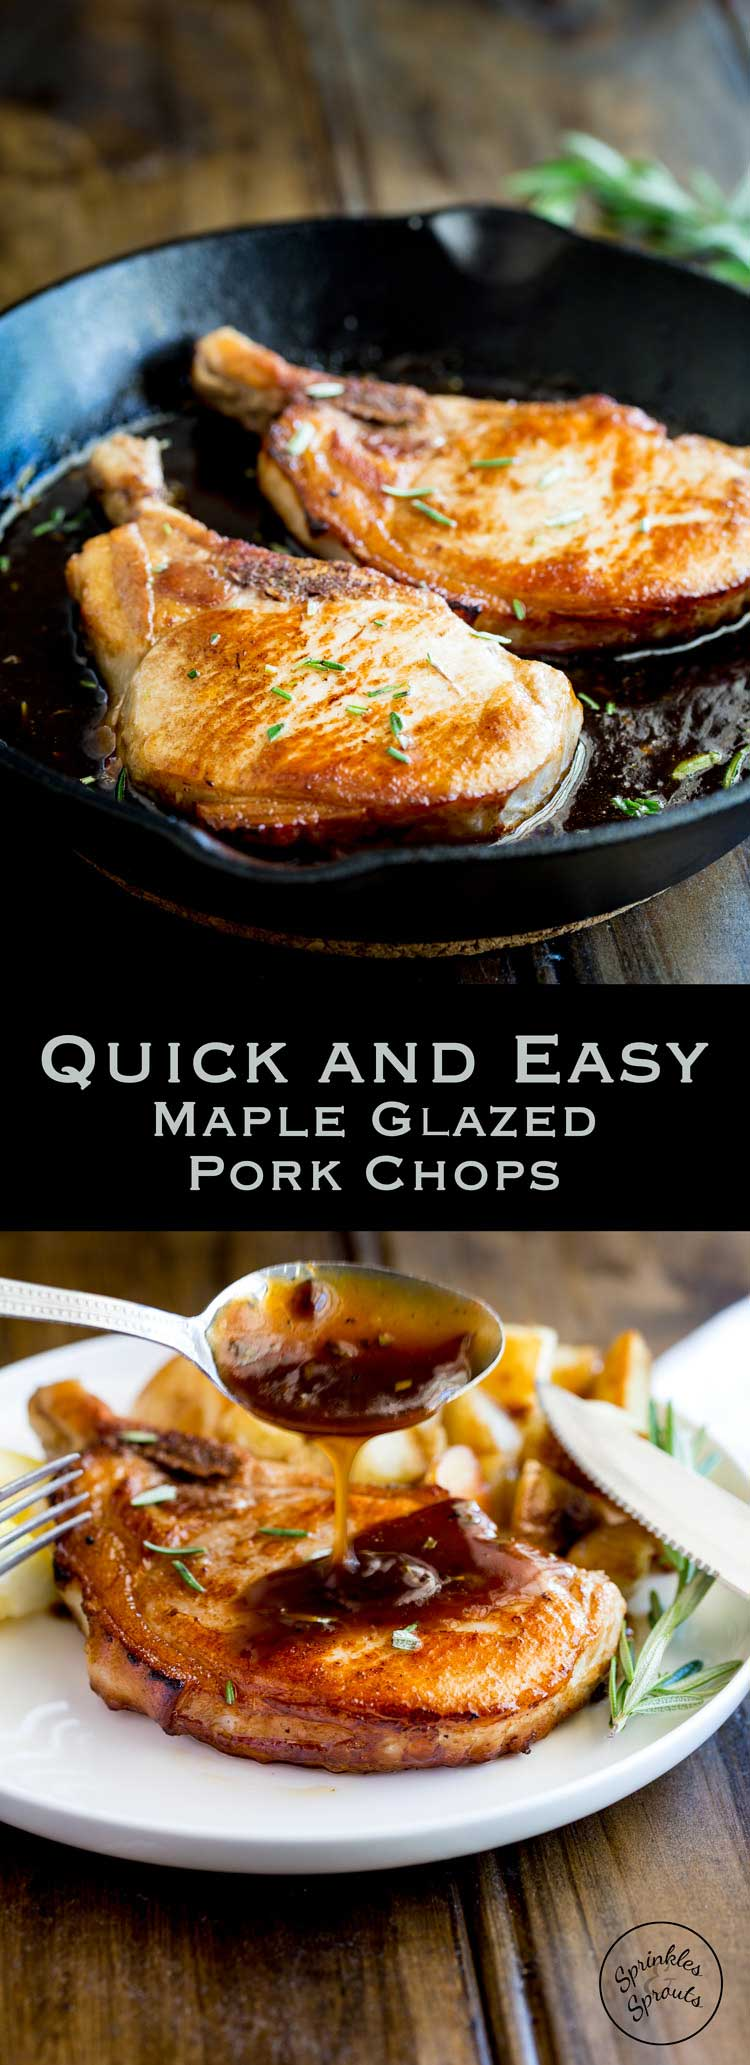 Juicy and tender pork in a mouthwateringly delicious sweet and salty glaze. Posh enough for guests this easy pork chop recipe is on the table in under 15 minutes! From https://www.sprinklesandsprouts.com.au #Sundaysupper